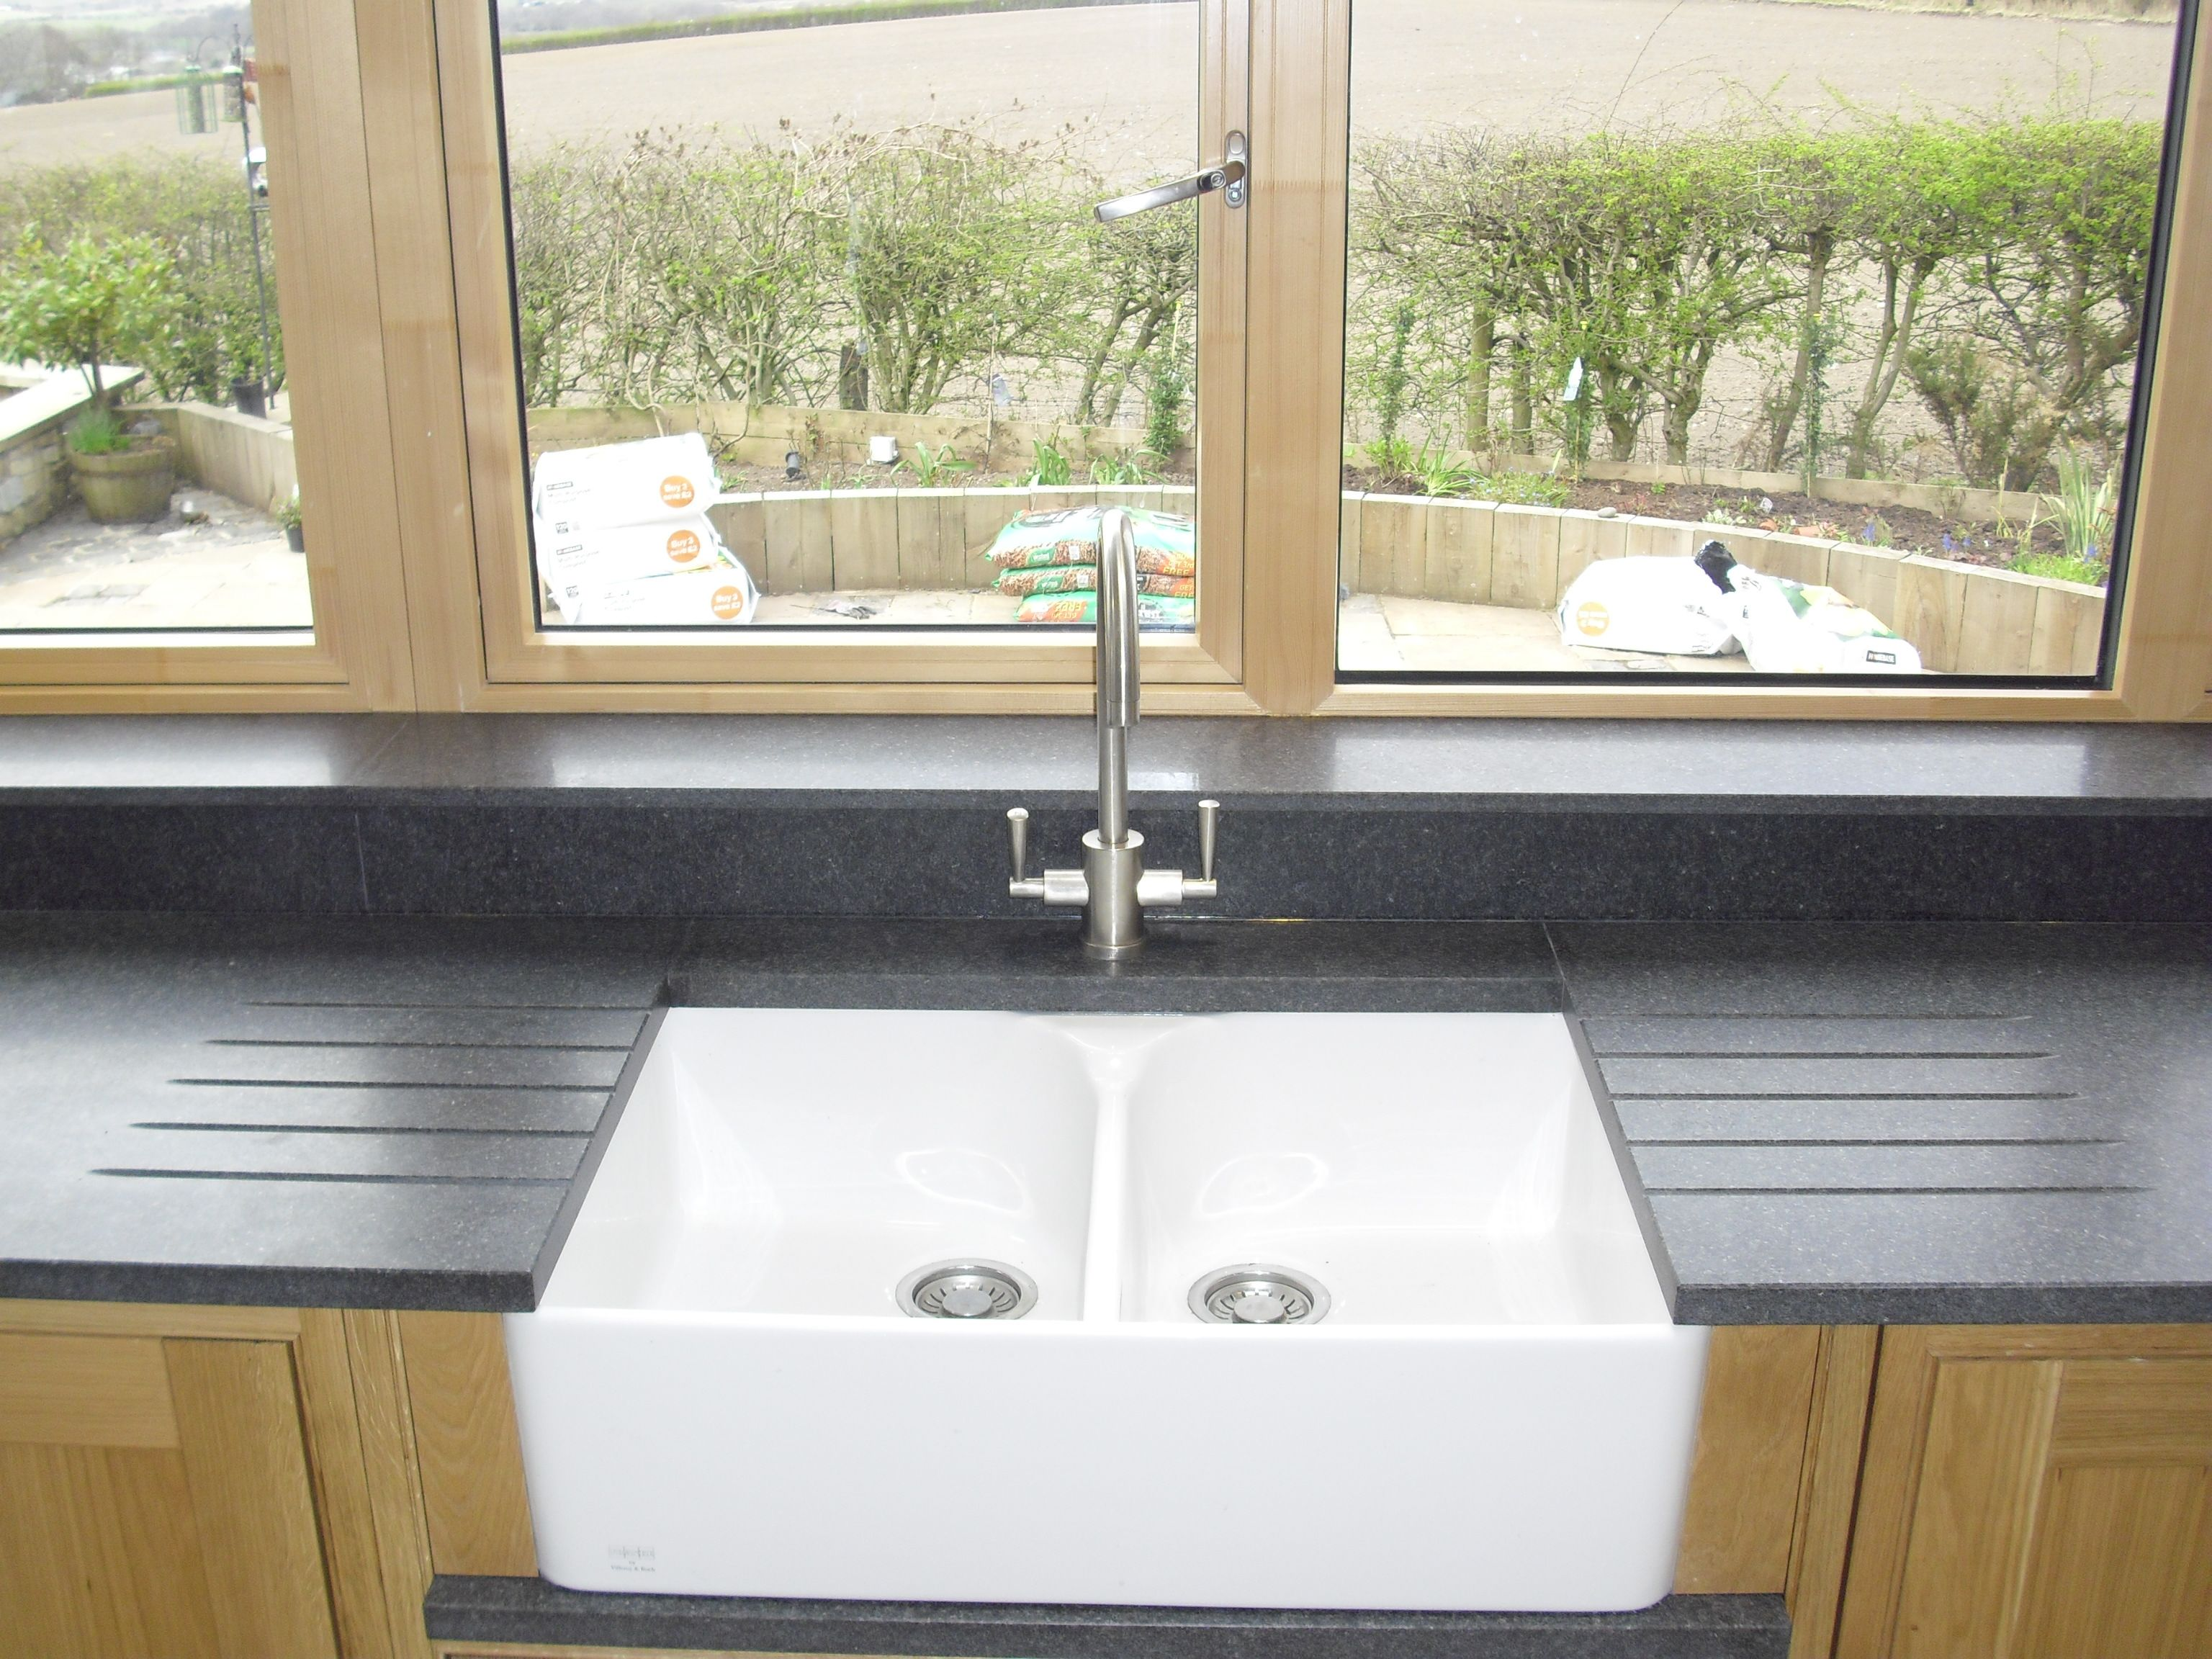 Bathroom worktop ideas -  Neroimpala Granite Honed Finish Double Belfast Sink And Double Sets Of Drainer